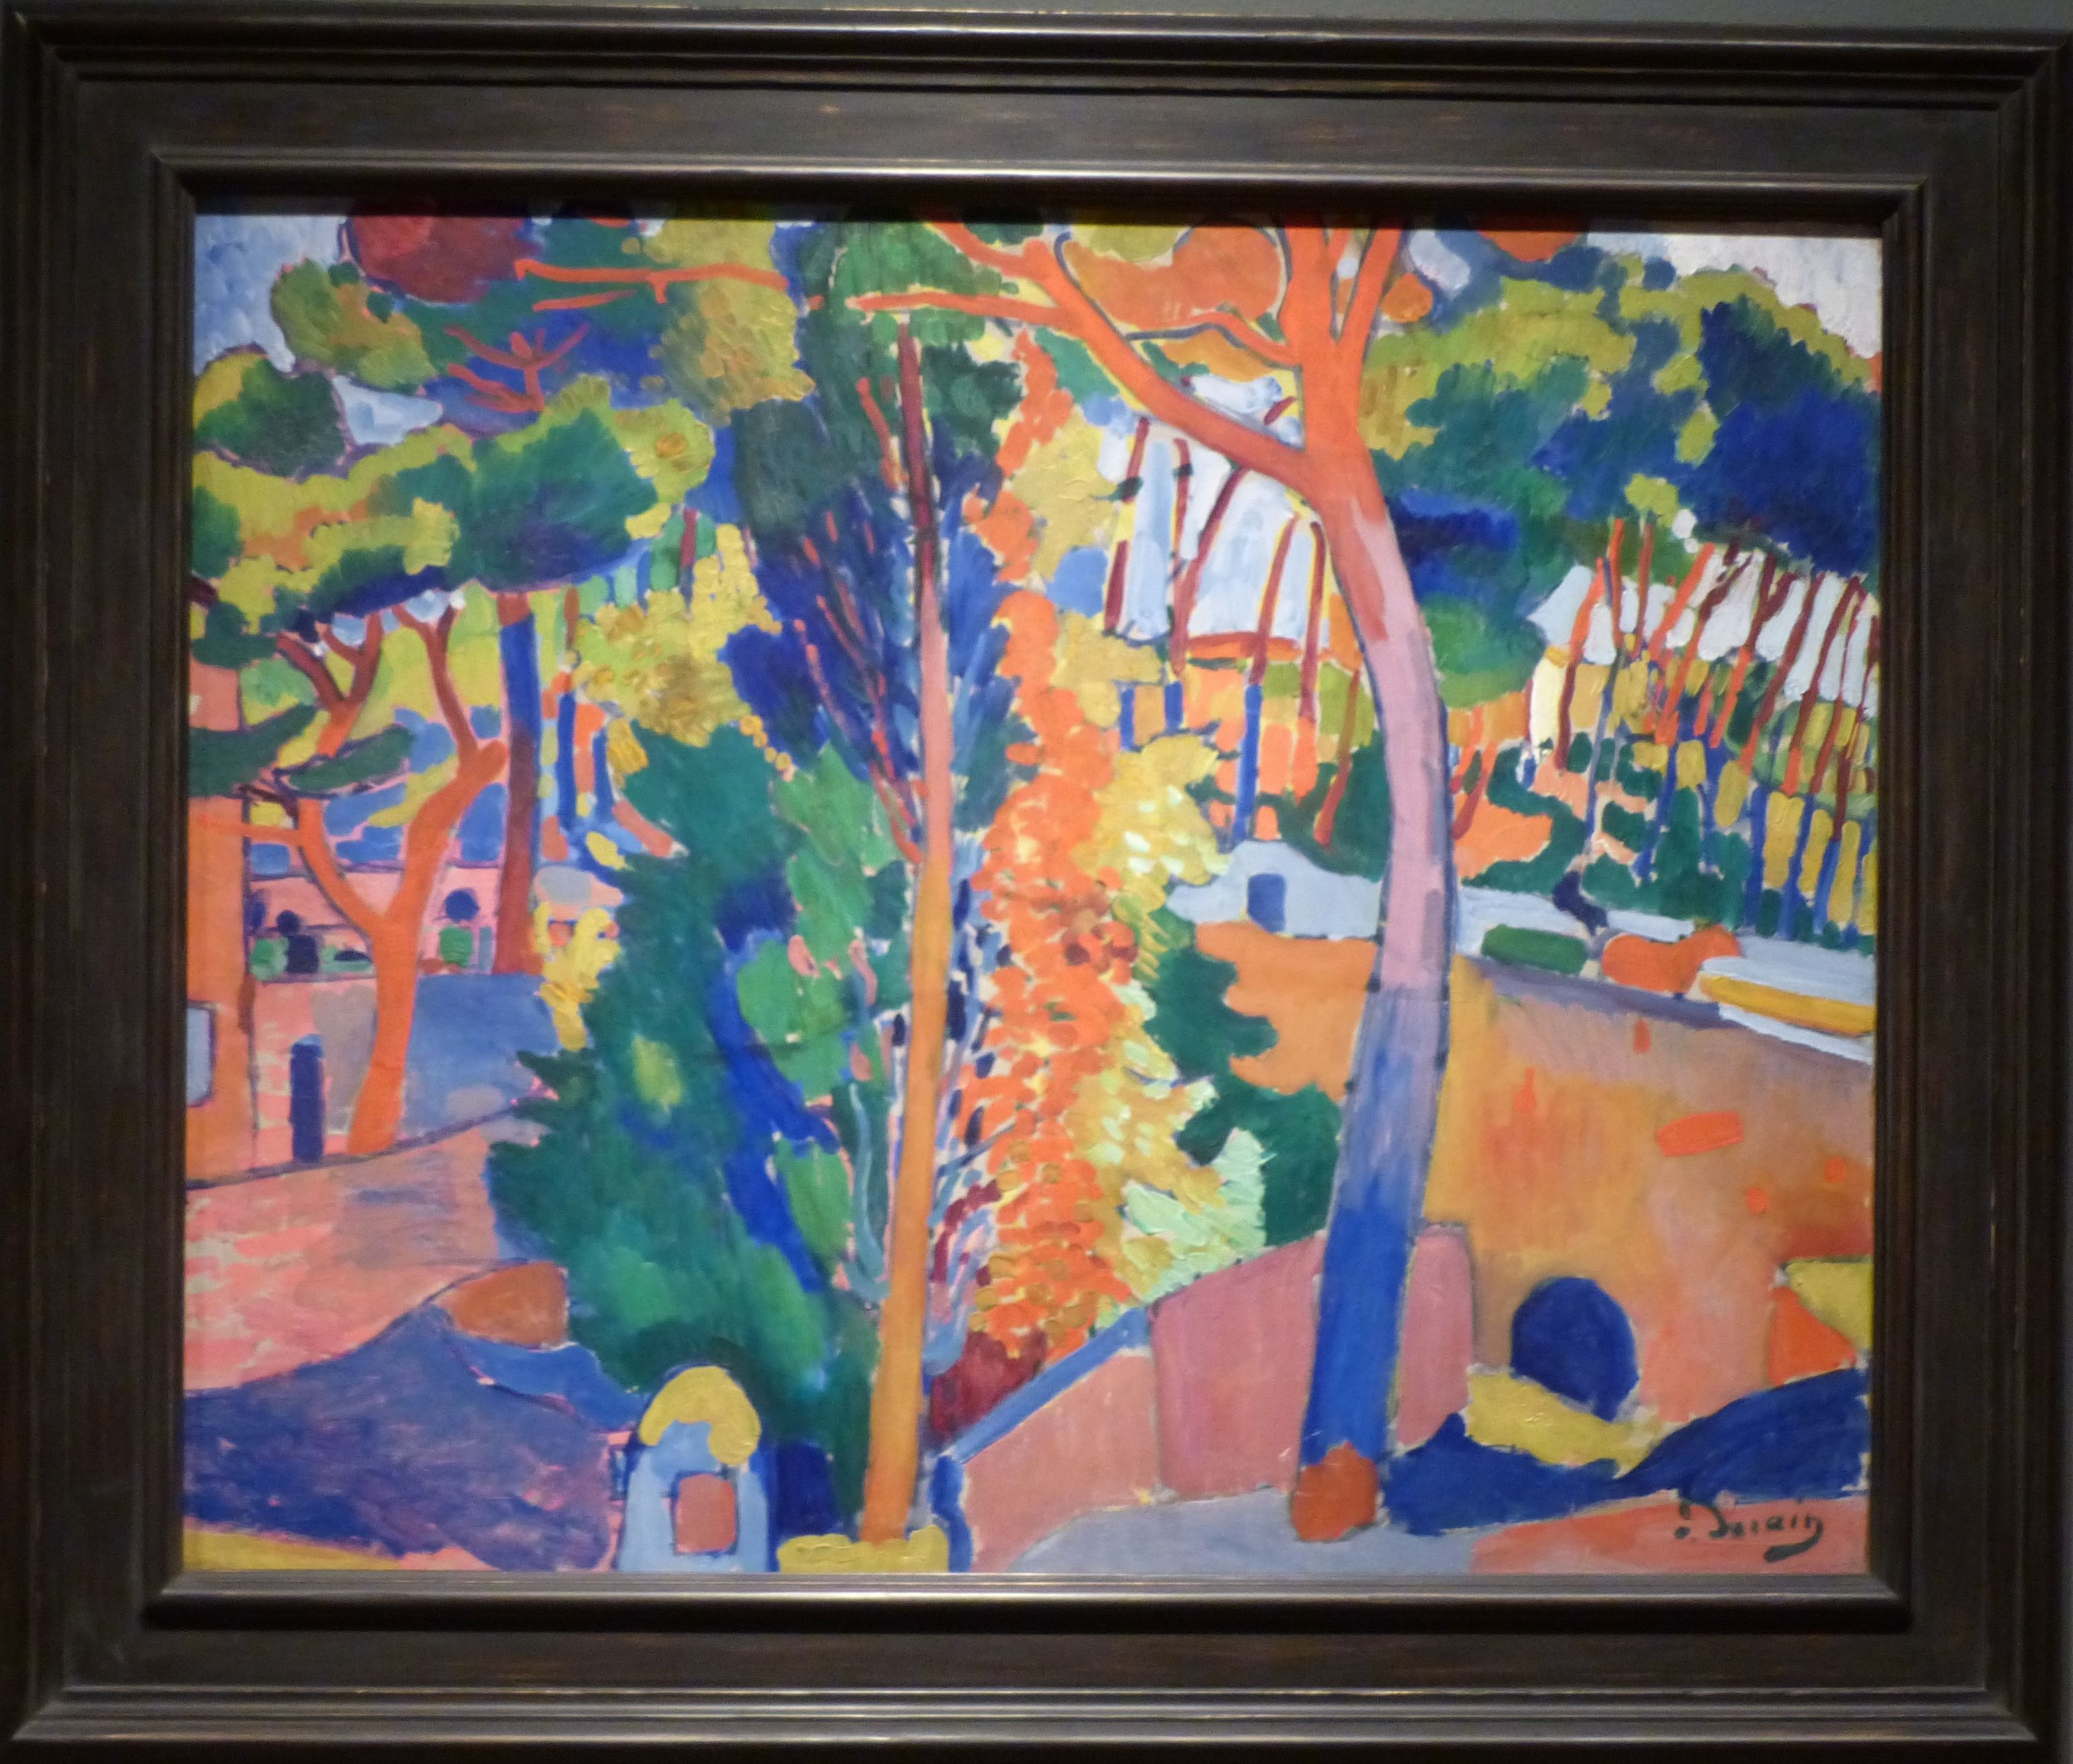 Bridge Over the Riou, Andre Derain (Paley Collection, MoMA)